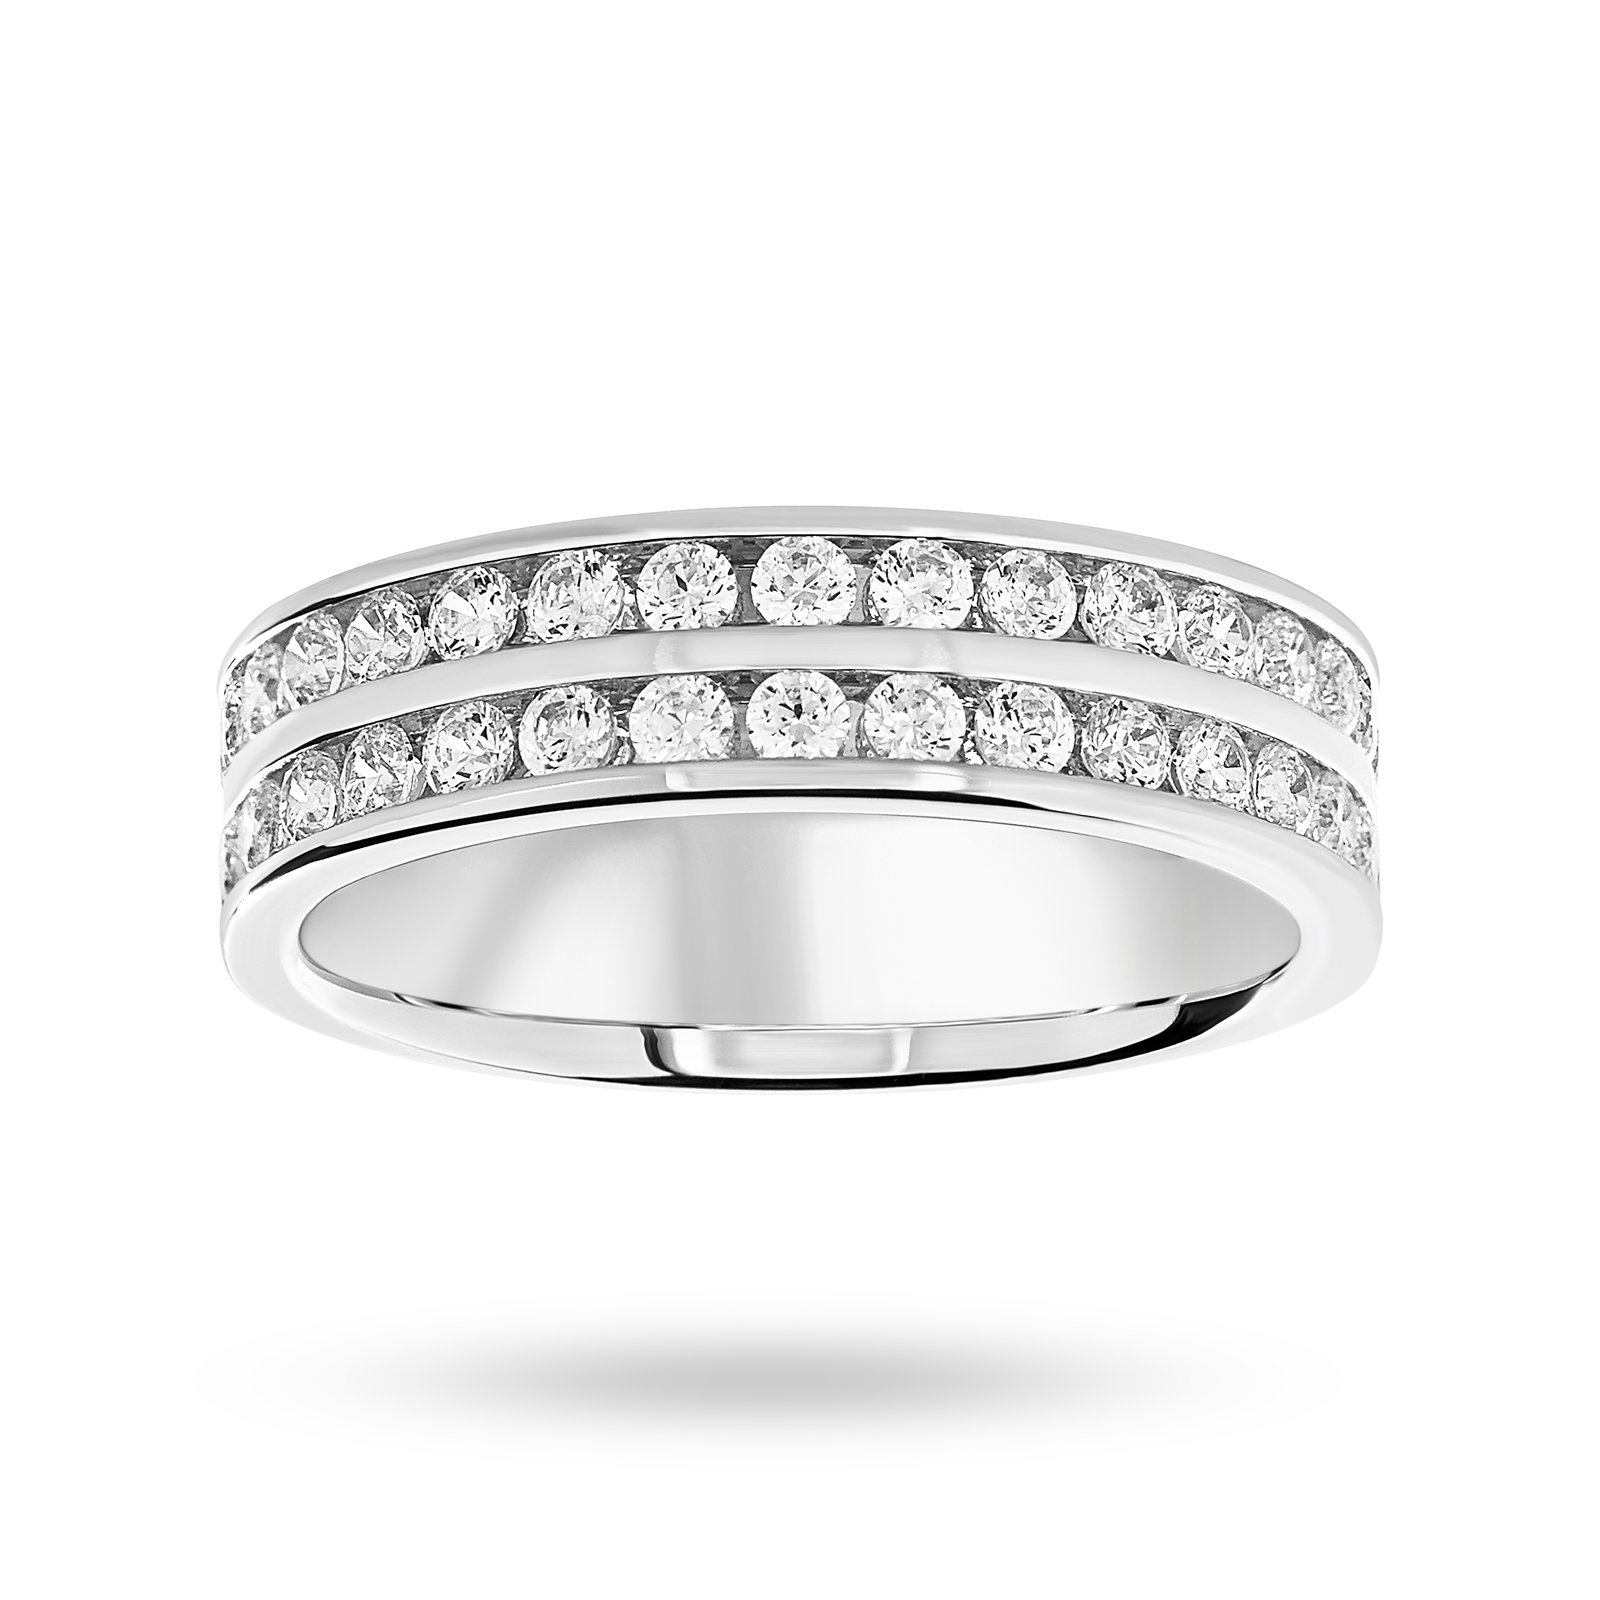 18ct White Gold 0.75cttw Diamond 2 Row Half Eternity Ring